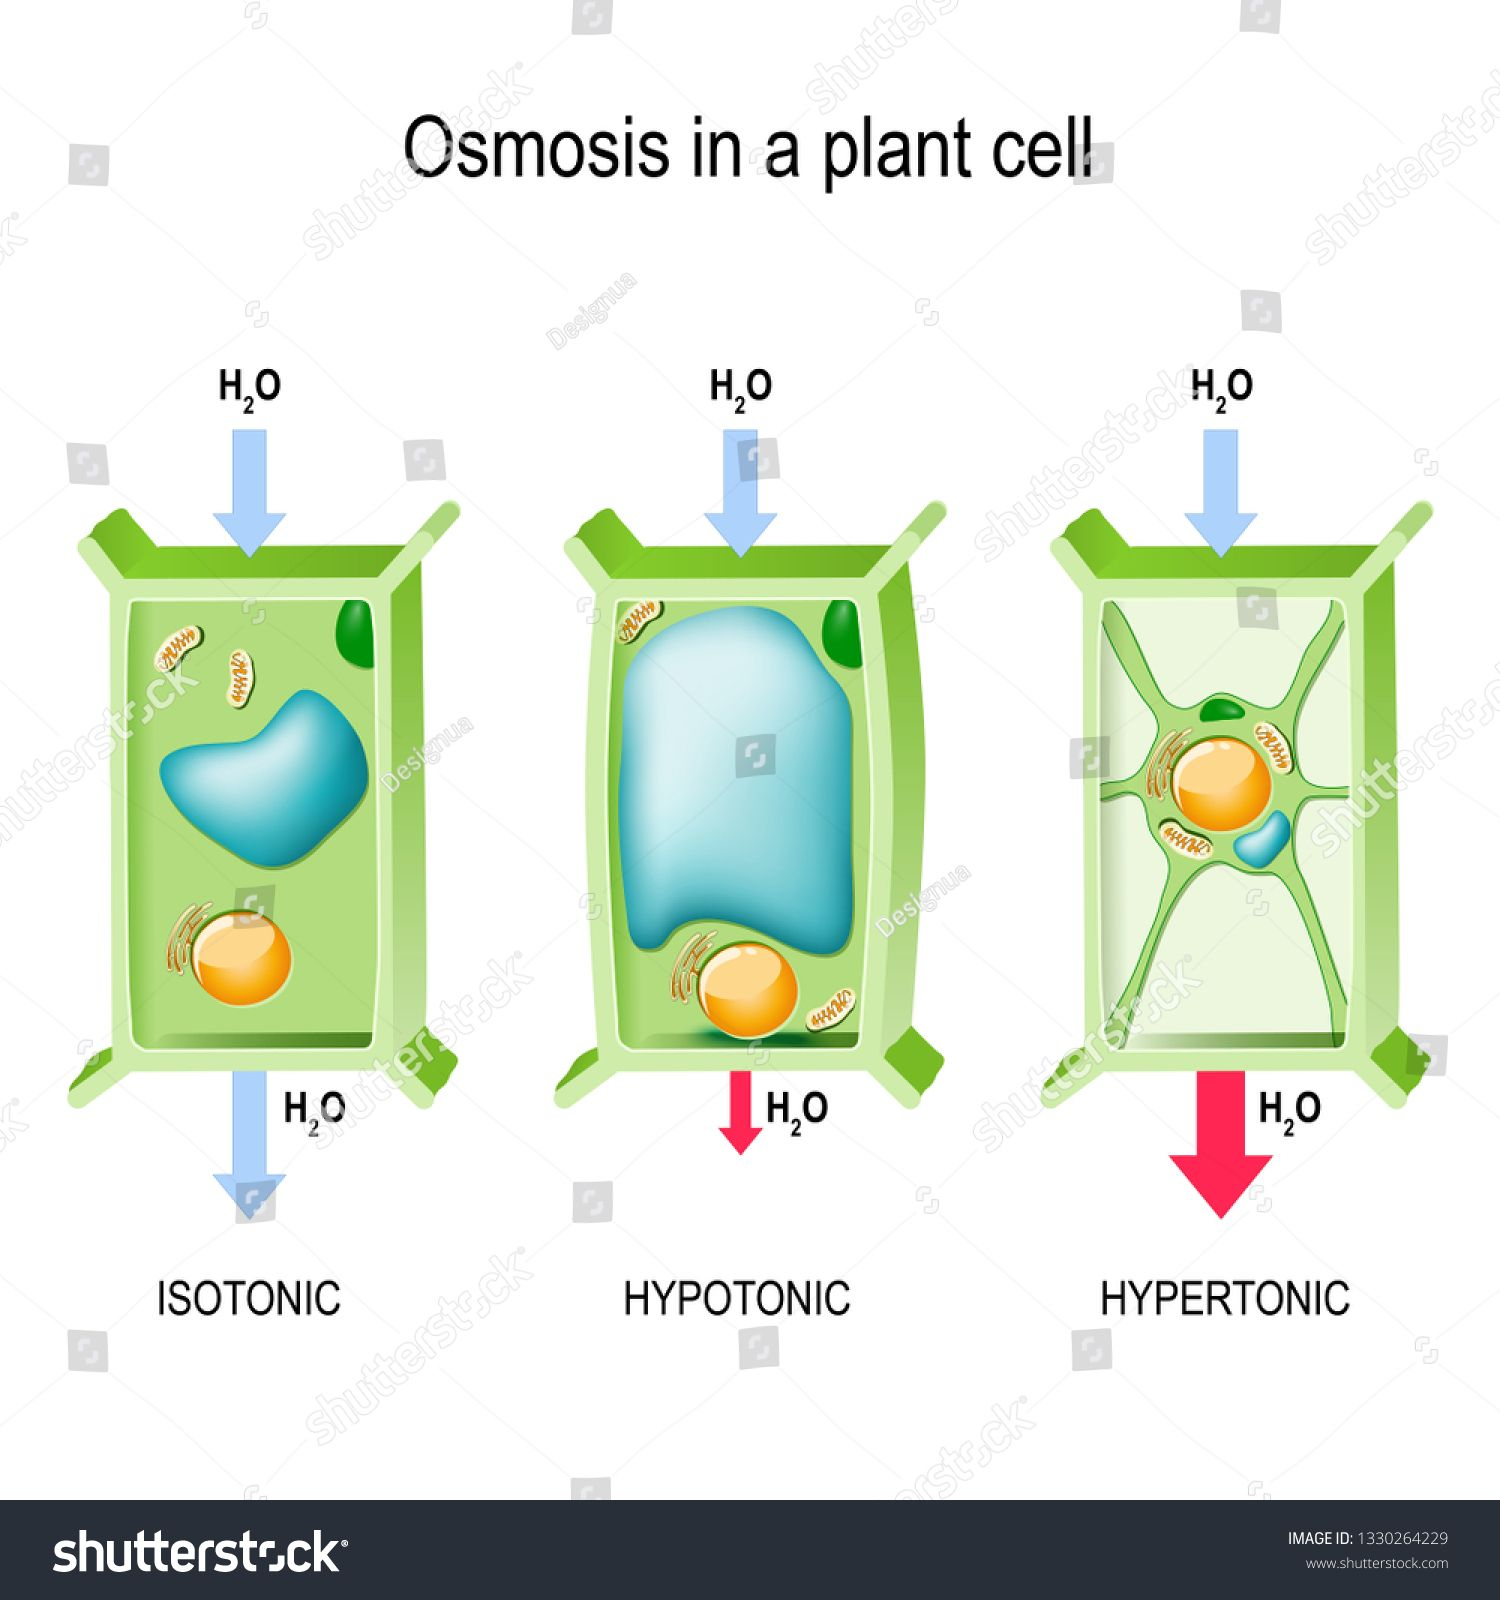 Osmosis In A Plant Cell 3 Types Of Tonicity Hypotonic